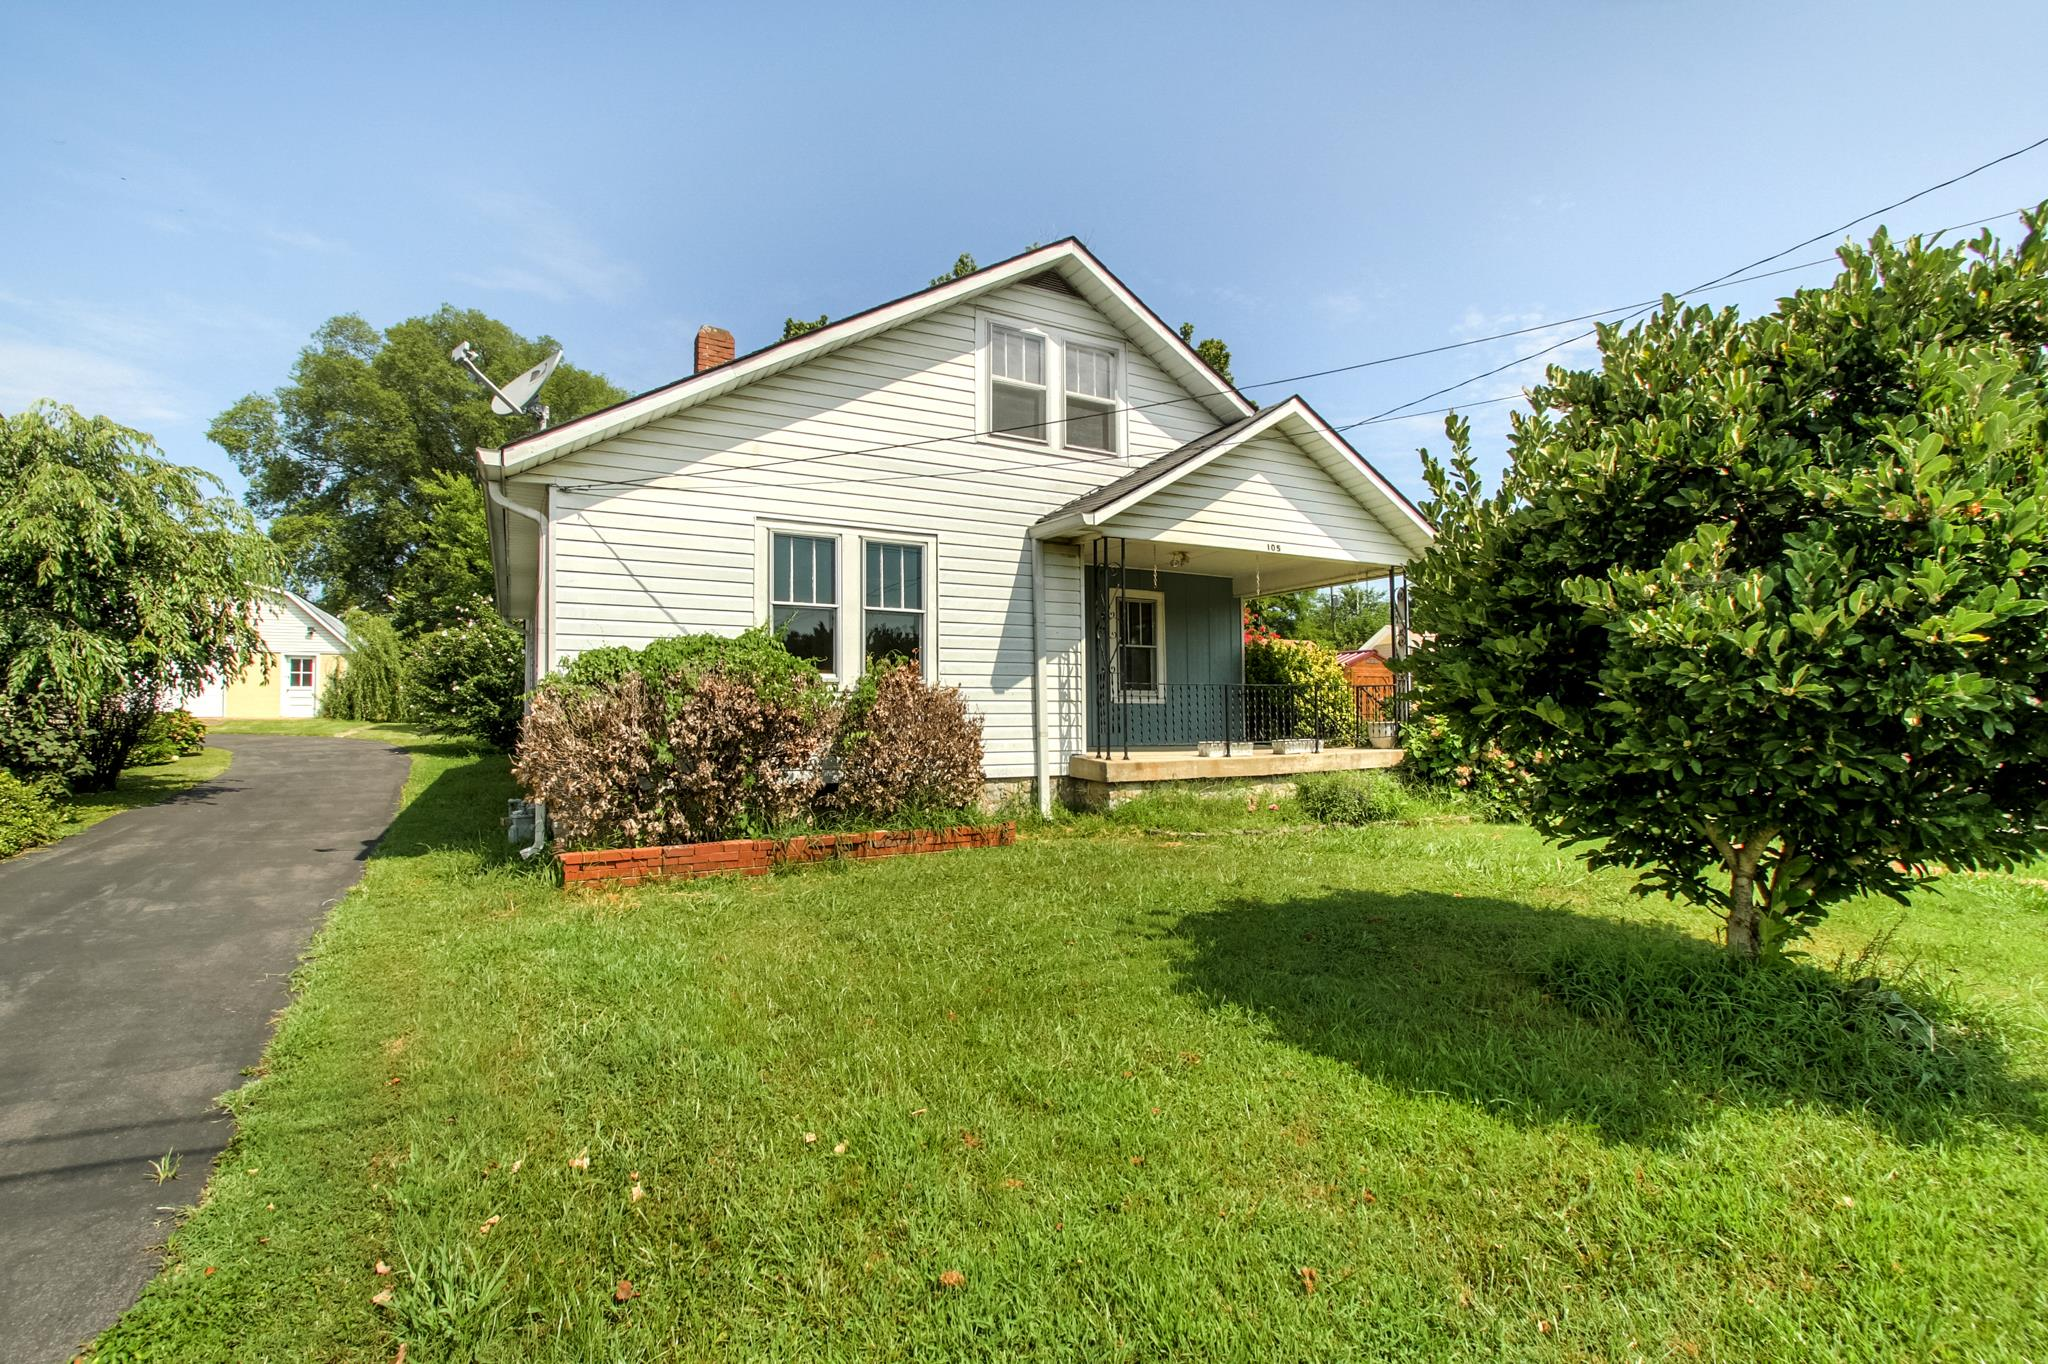 105 30th St, Old Hickory, TN 37138